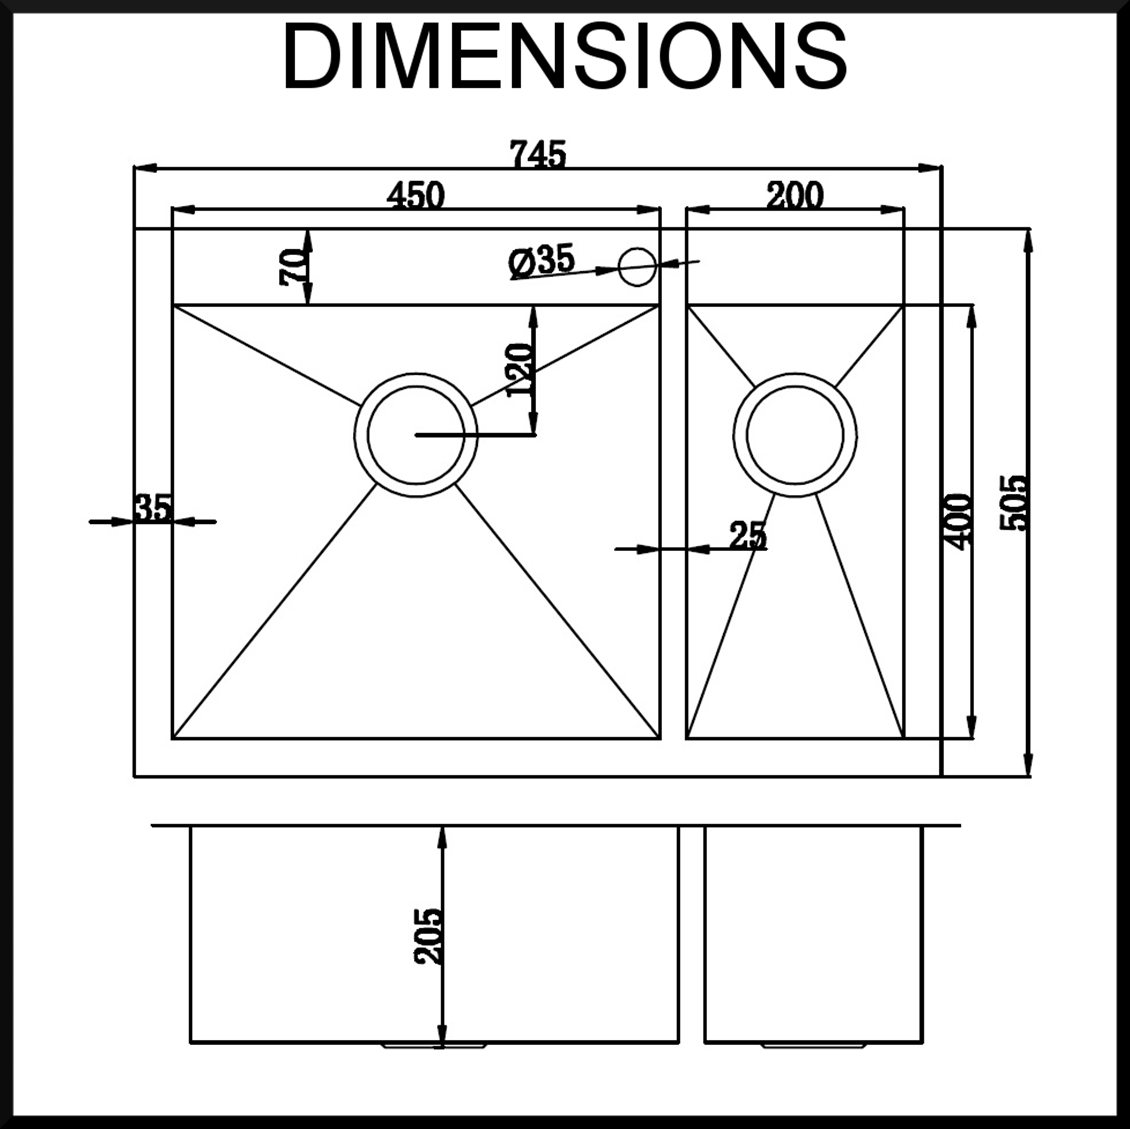 Stainless Steel Sink Dimensions : stainless-steel-kitchen-sink-dimensions